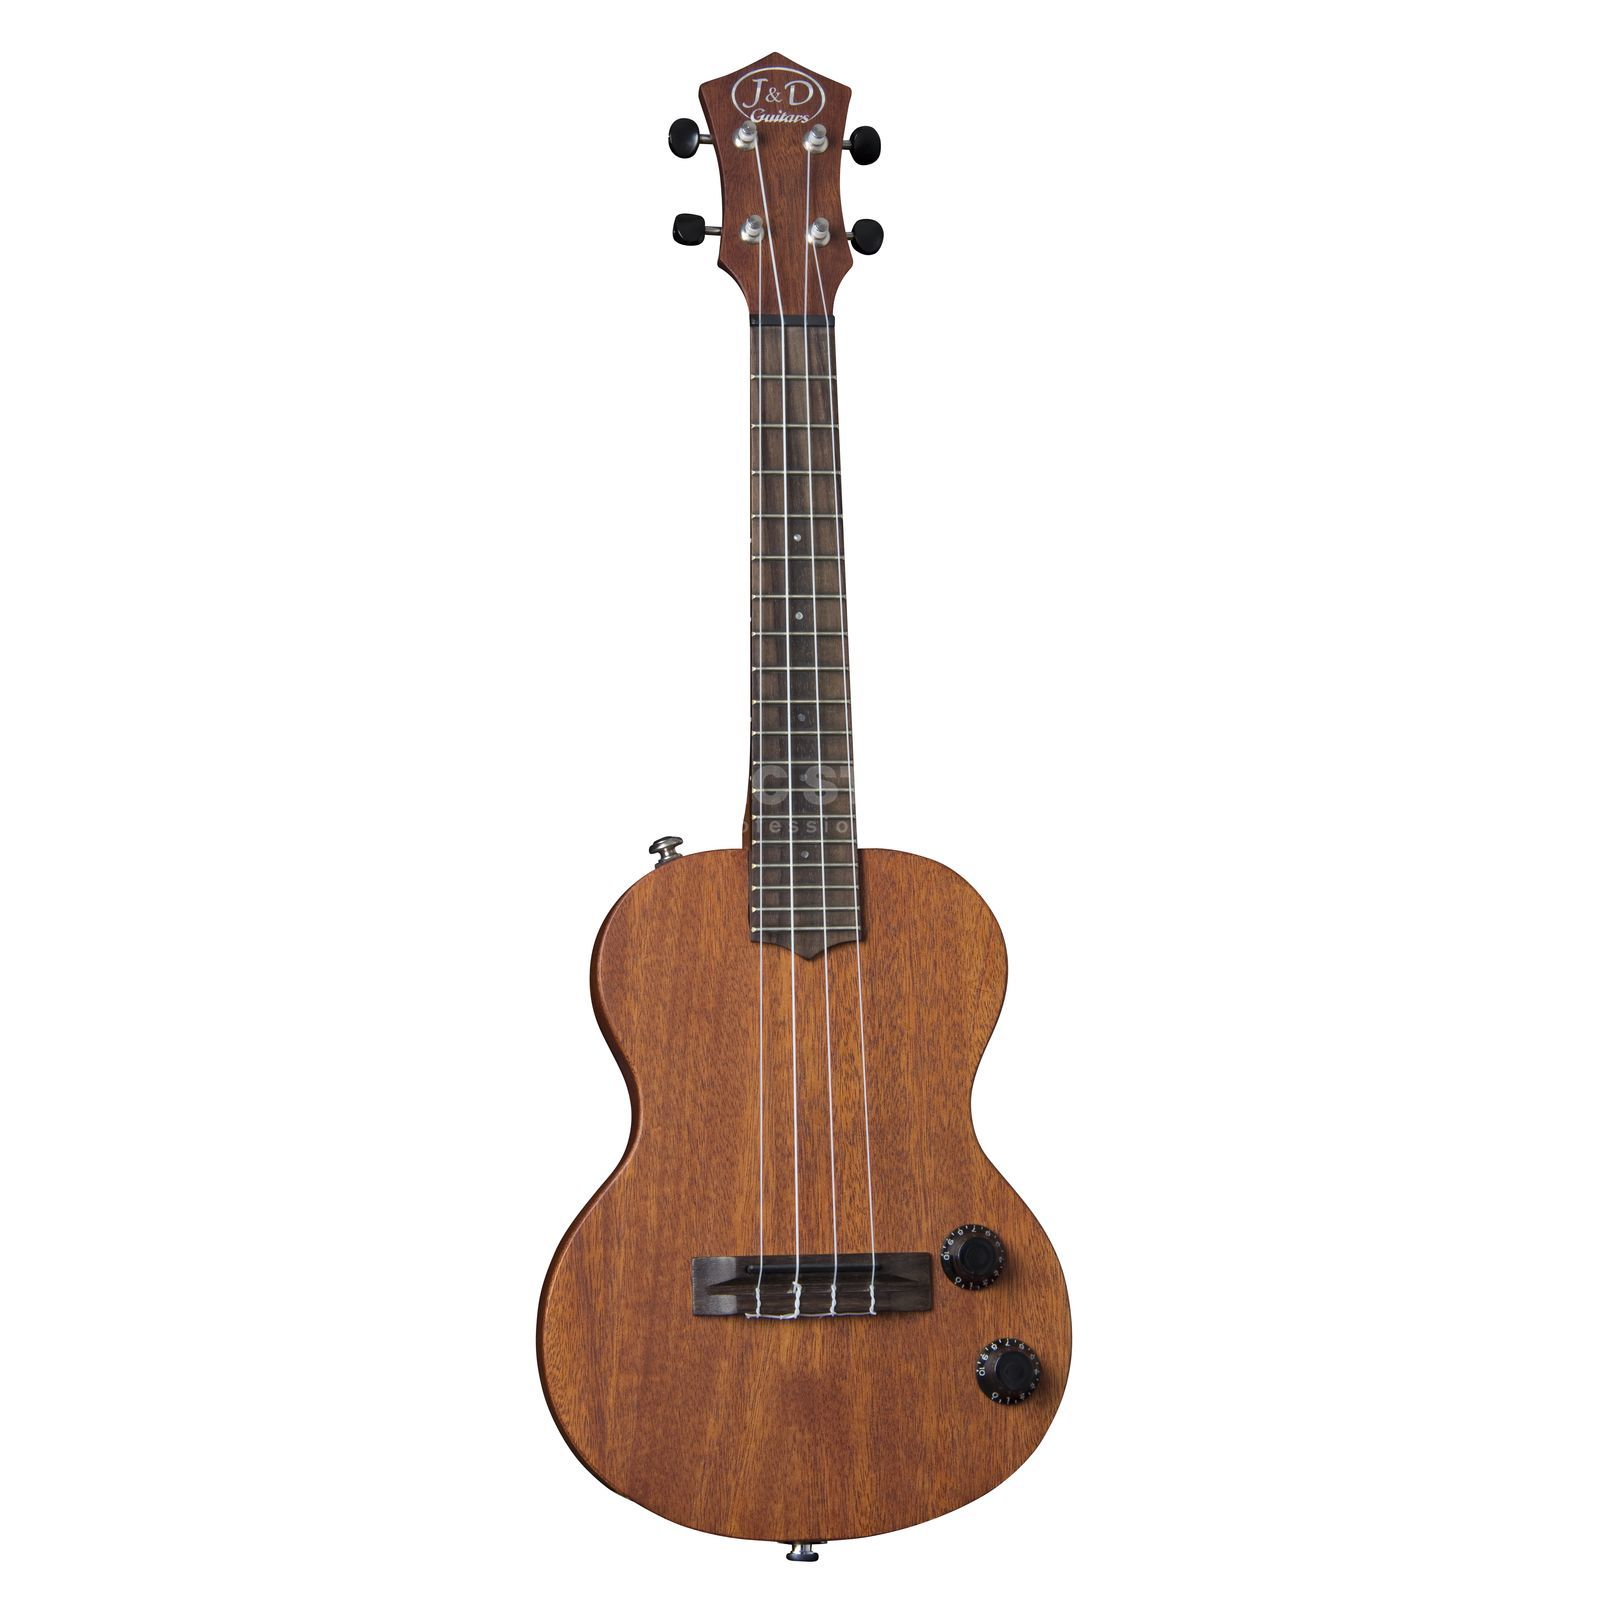 Jack & Danny Electric Solid Body Ukulele Produktbild